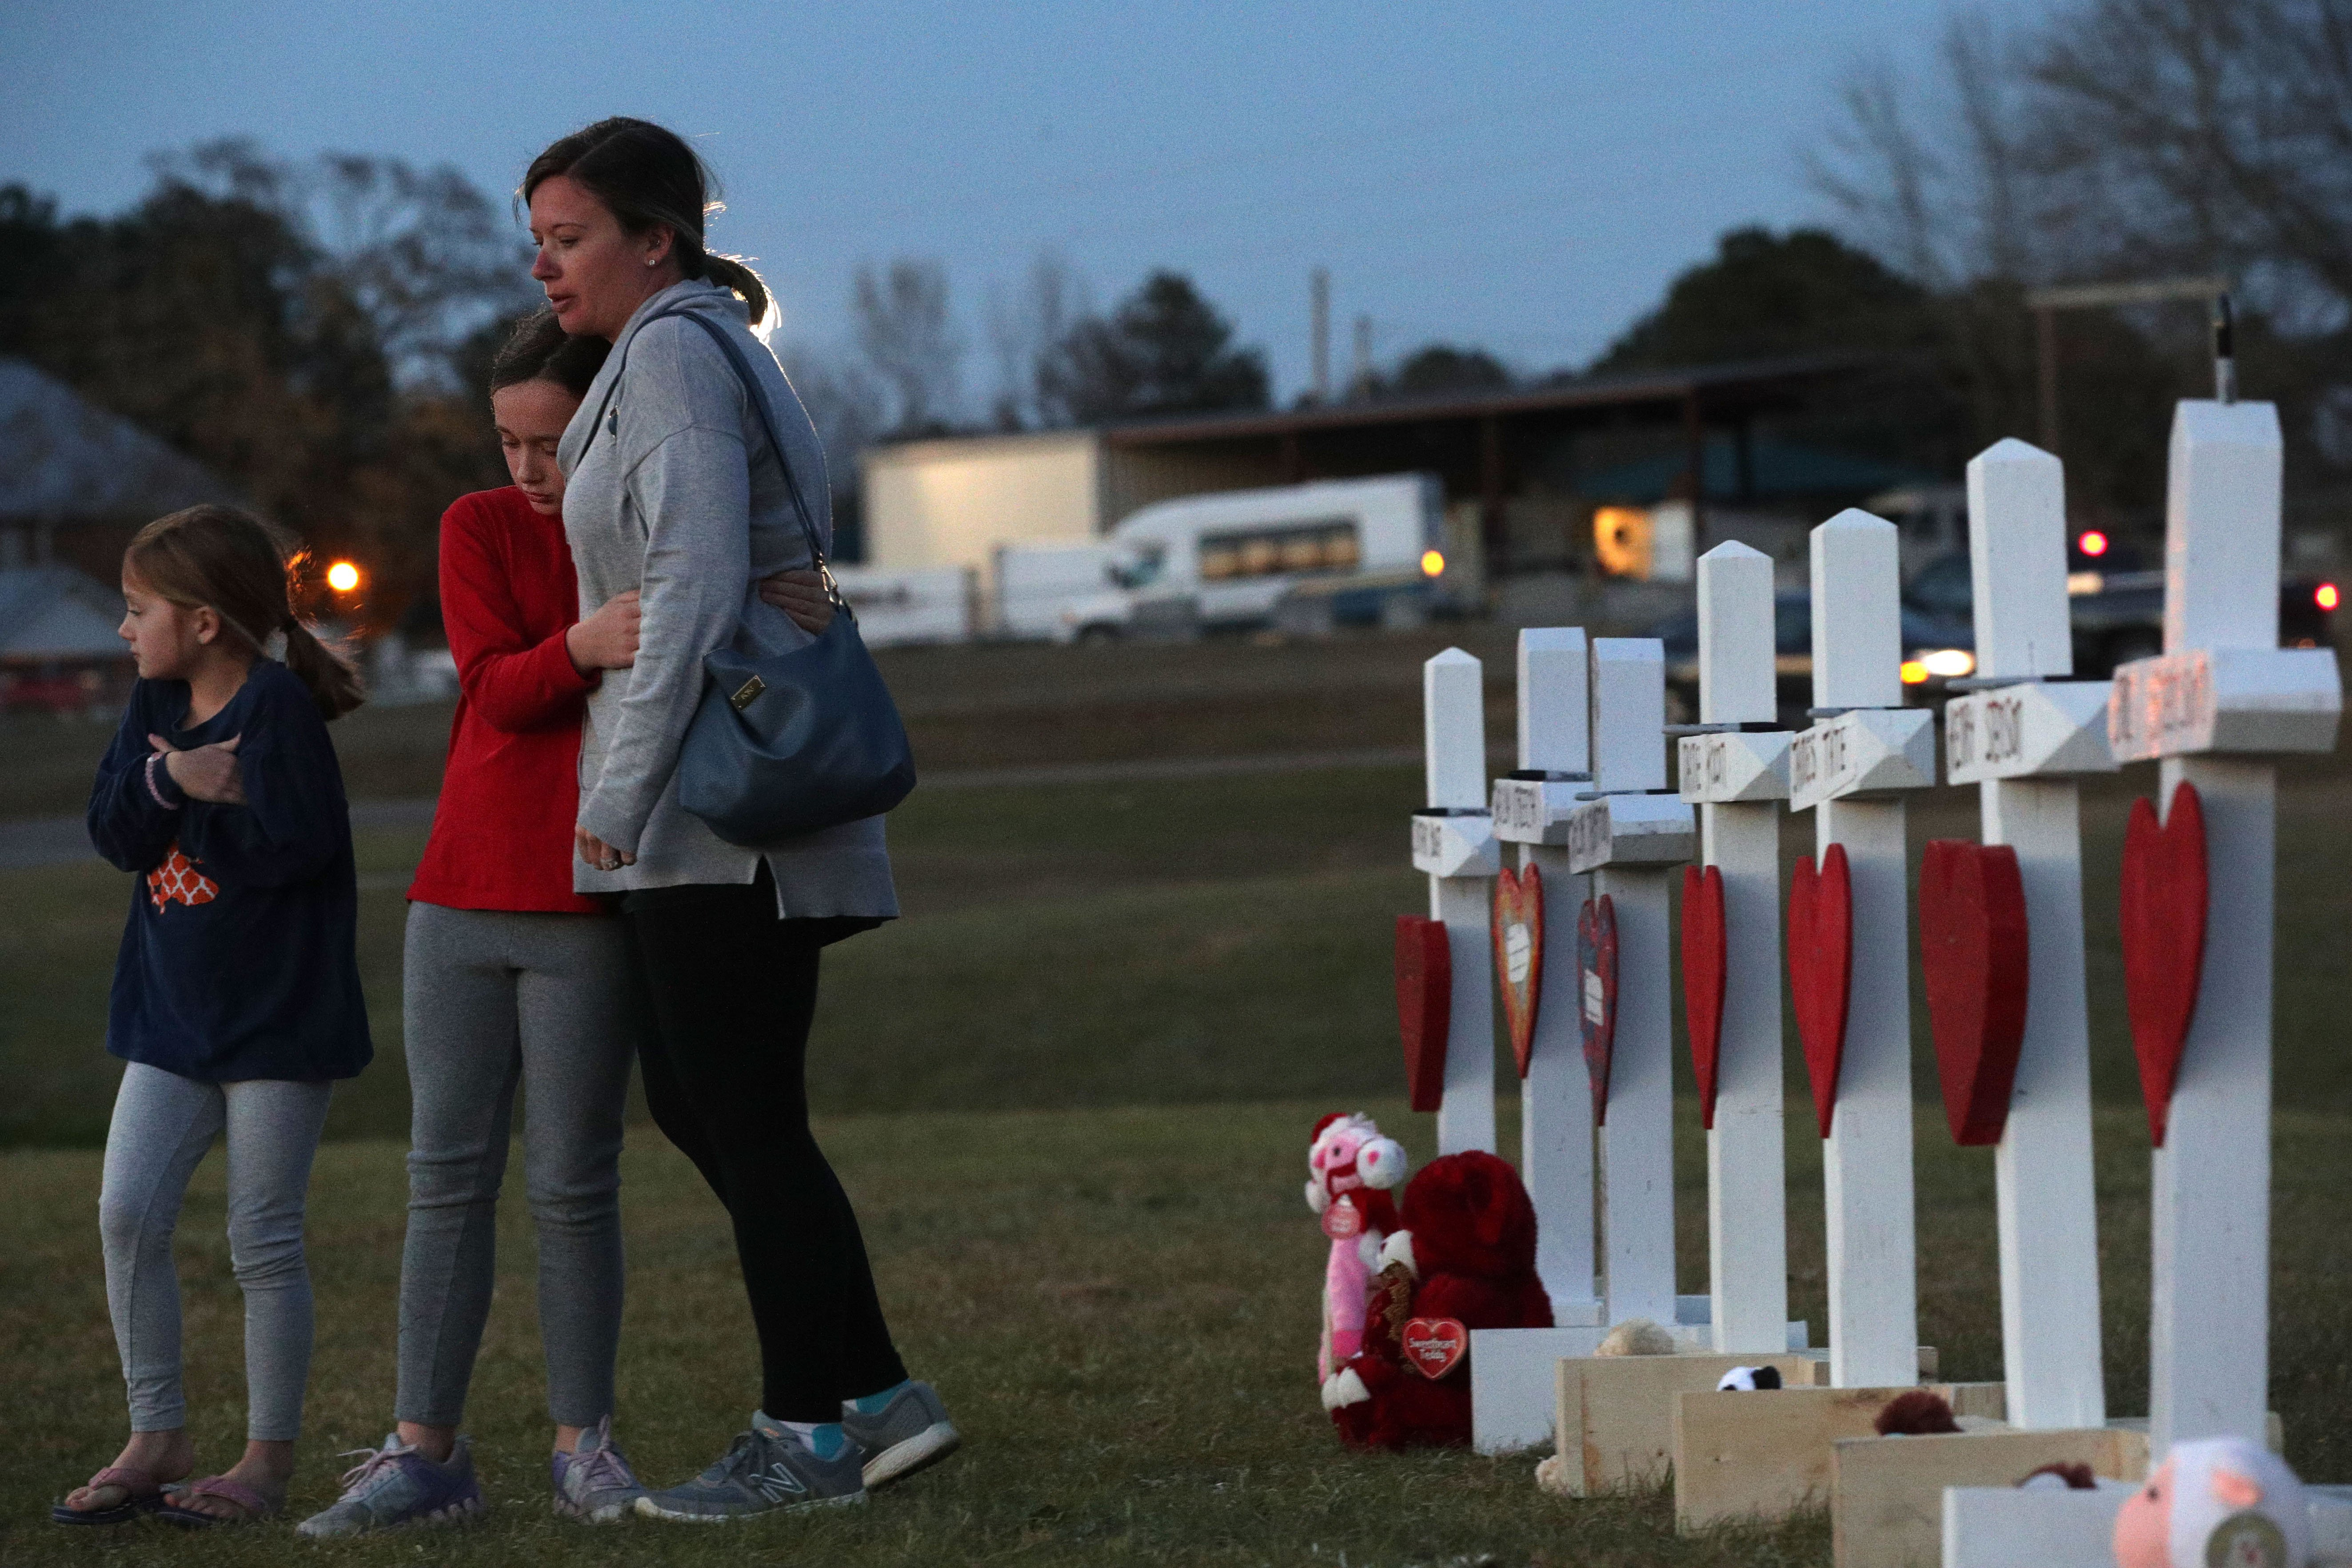 A family paying their respects to a friend who passed during the Tornado in Opelika, Alabama | Photo: Getty Images